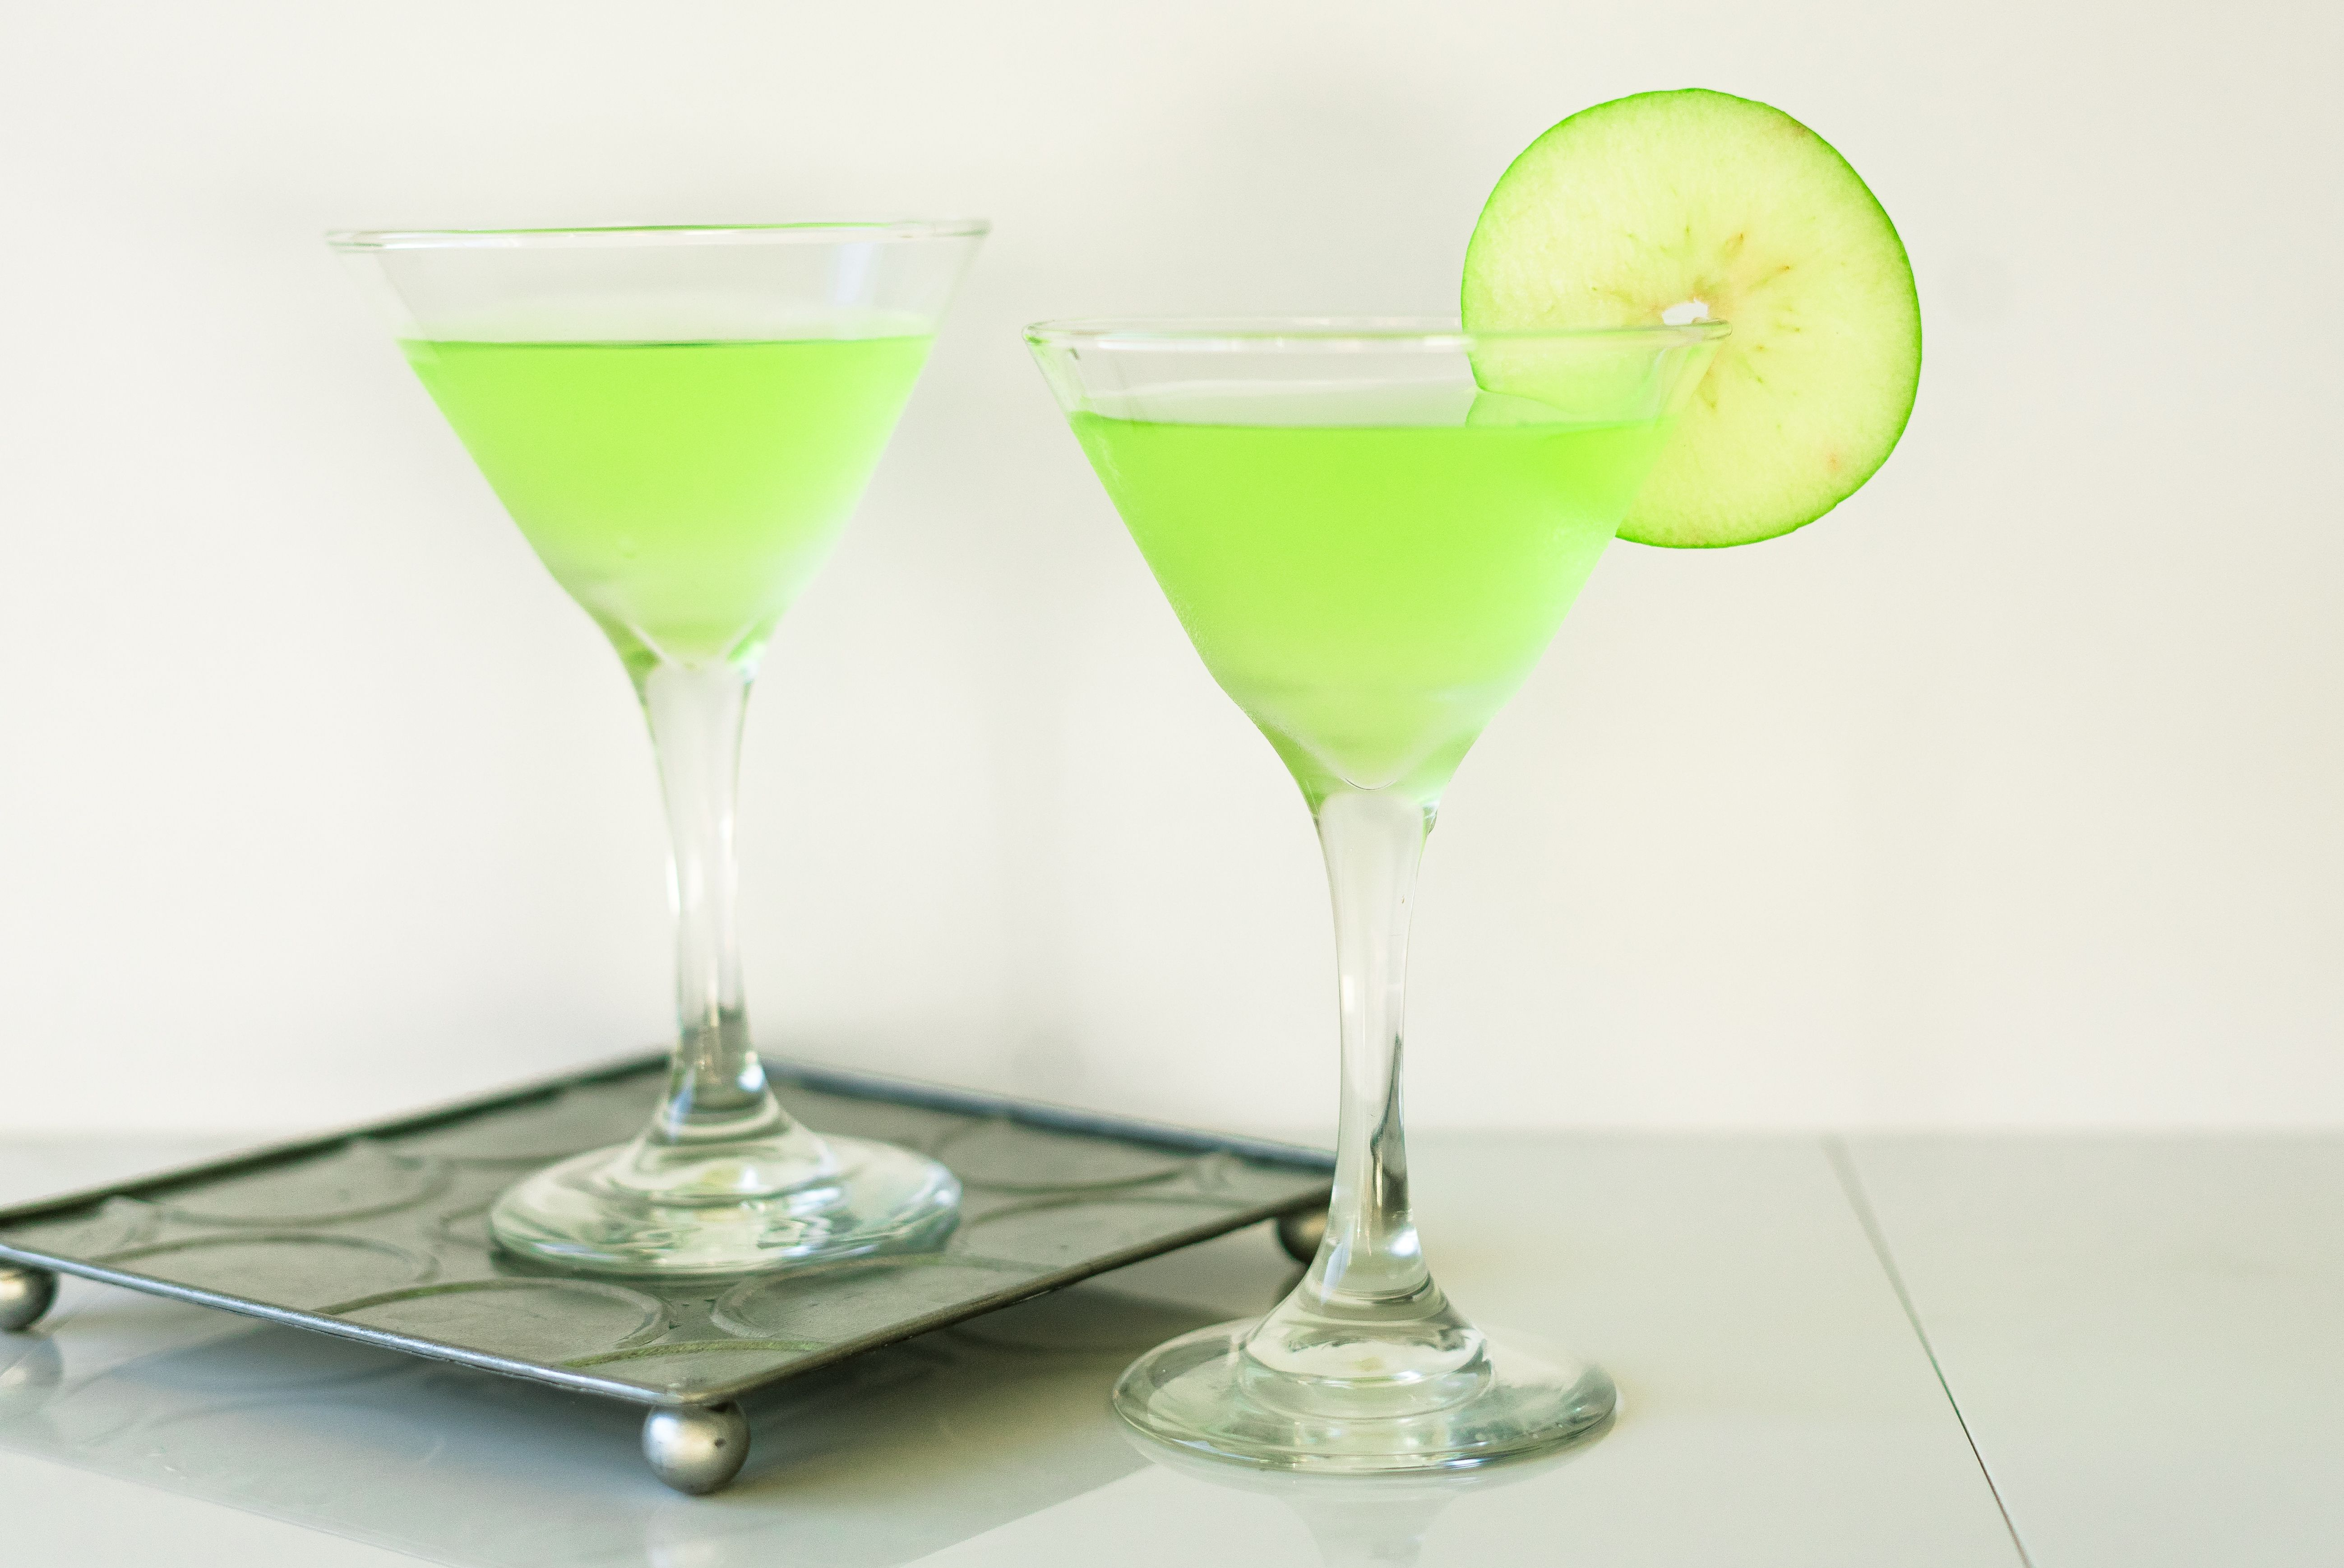 How to make appletini from scratch